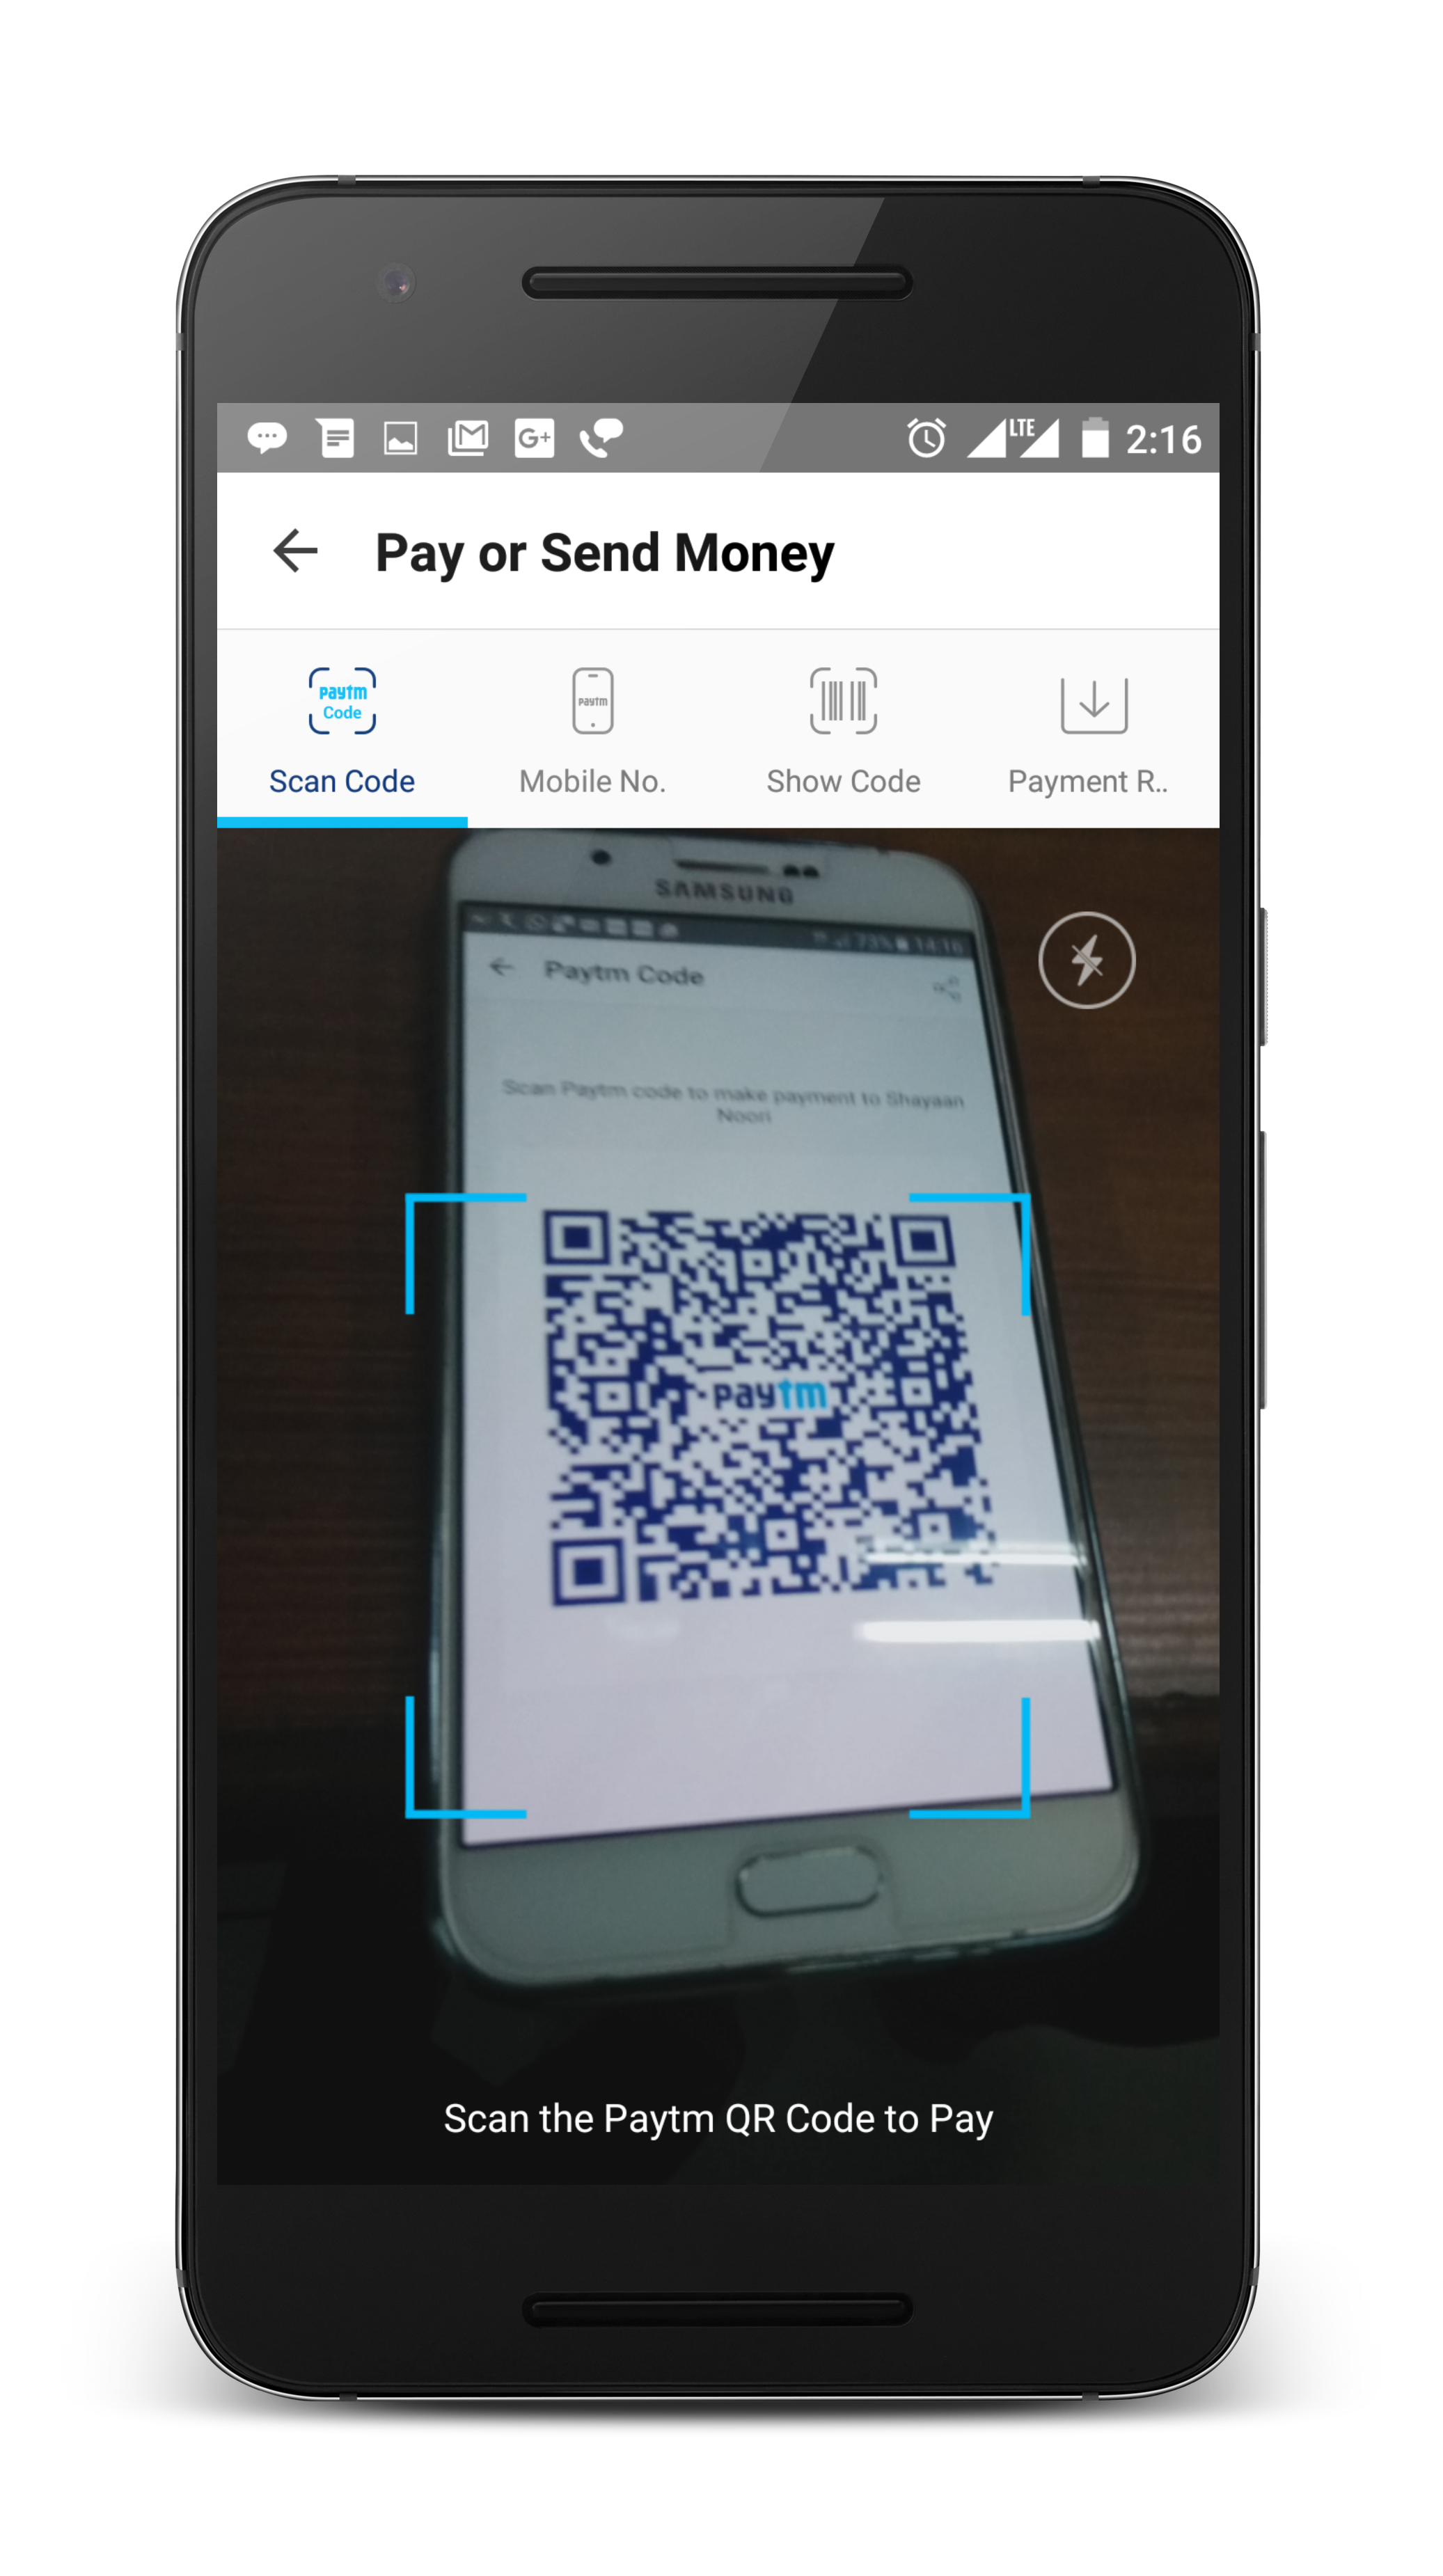 Paytm Mobile scan